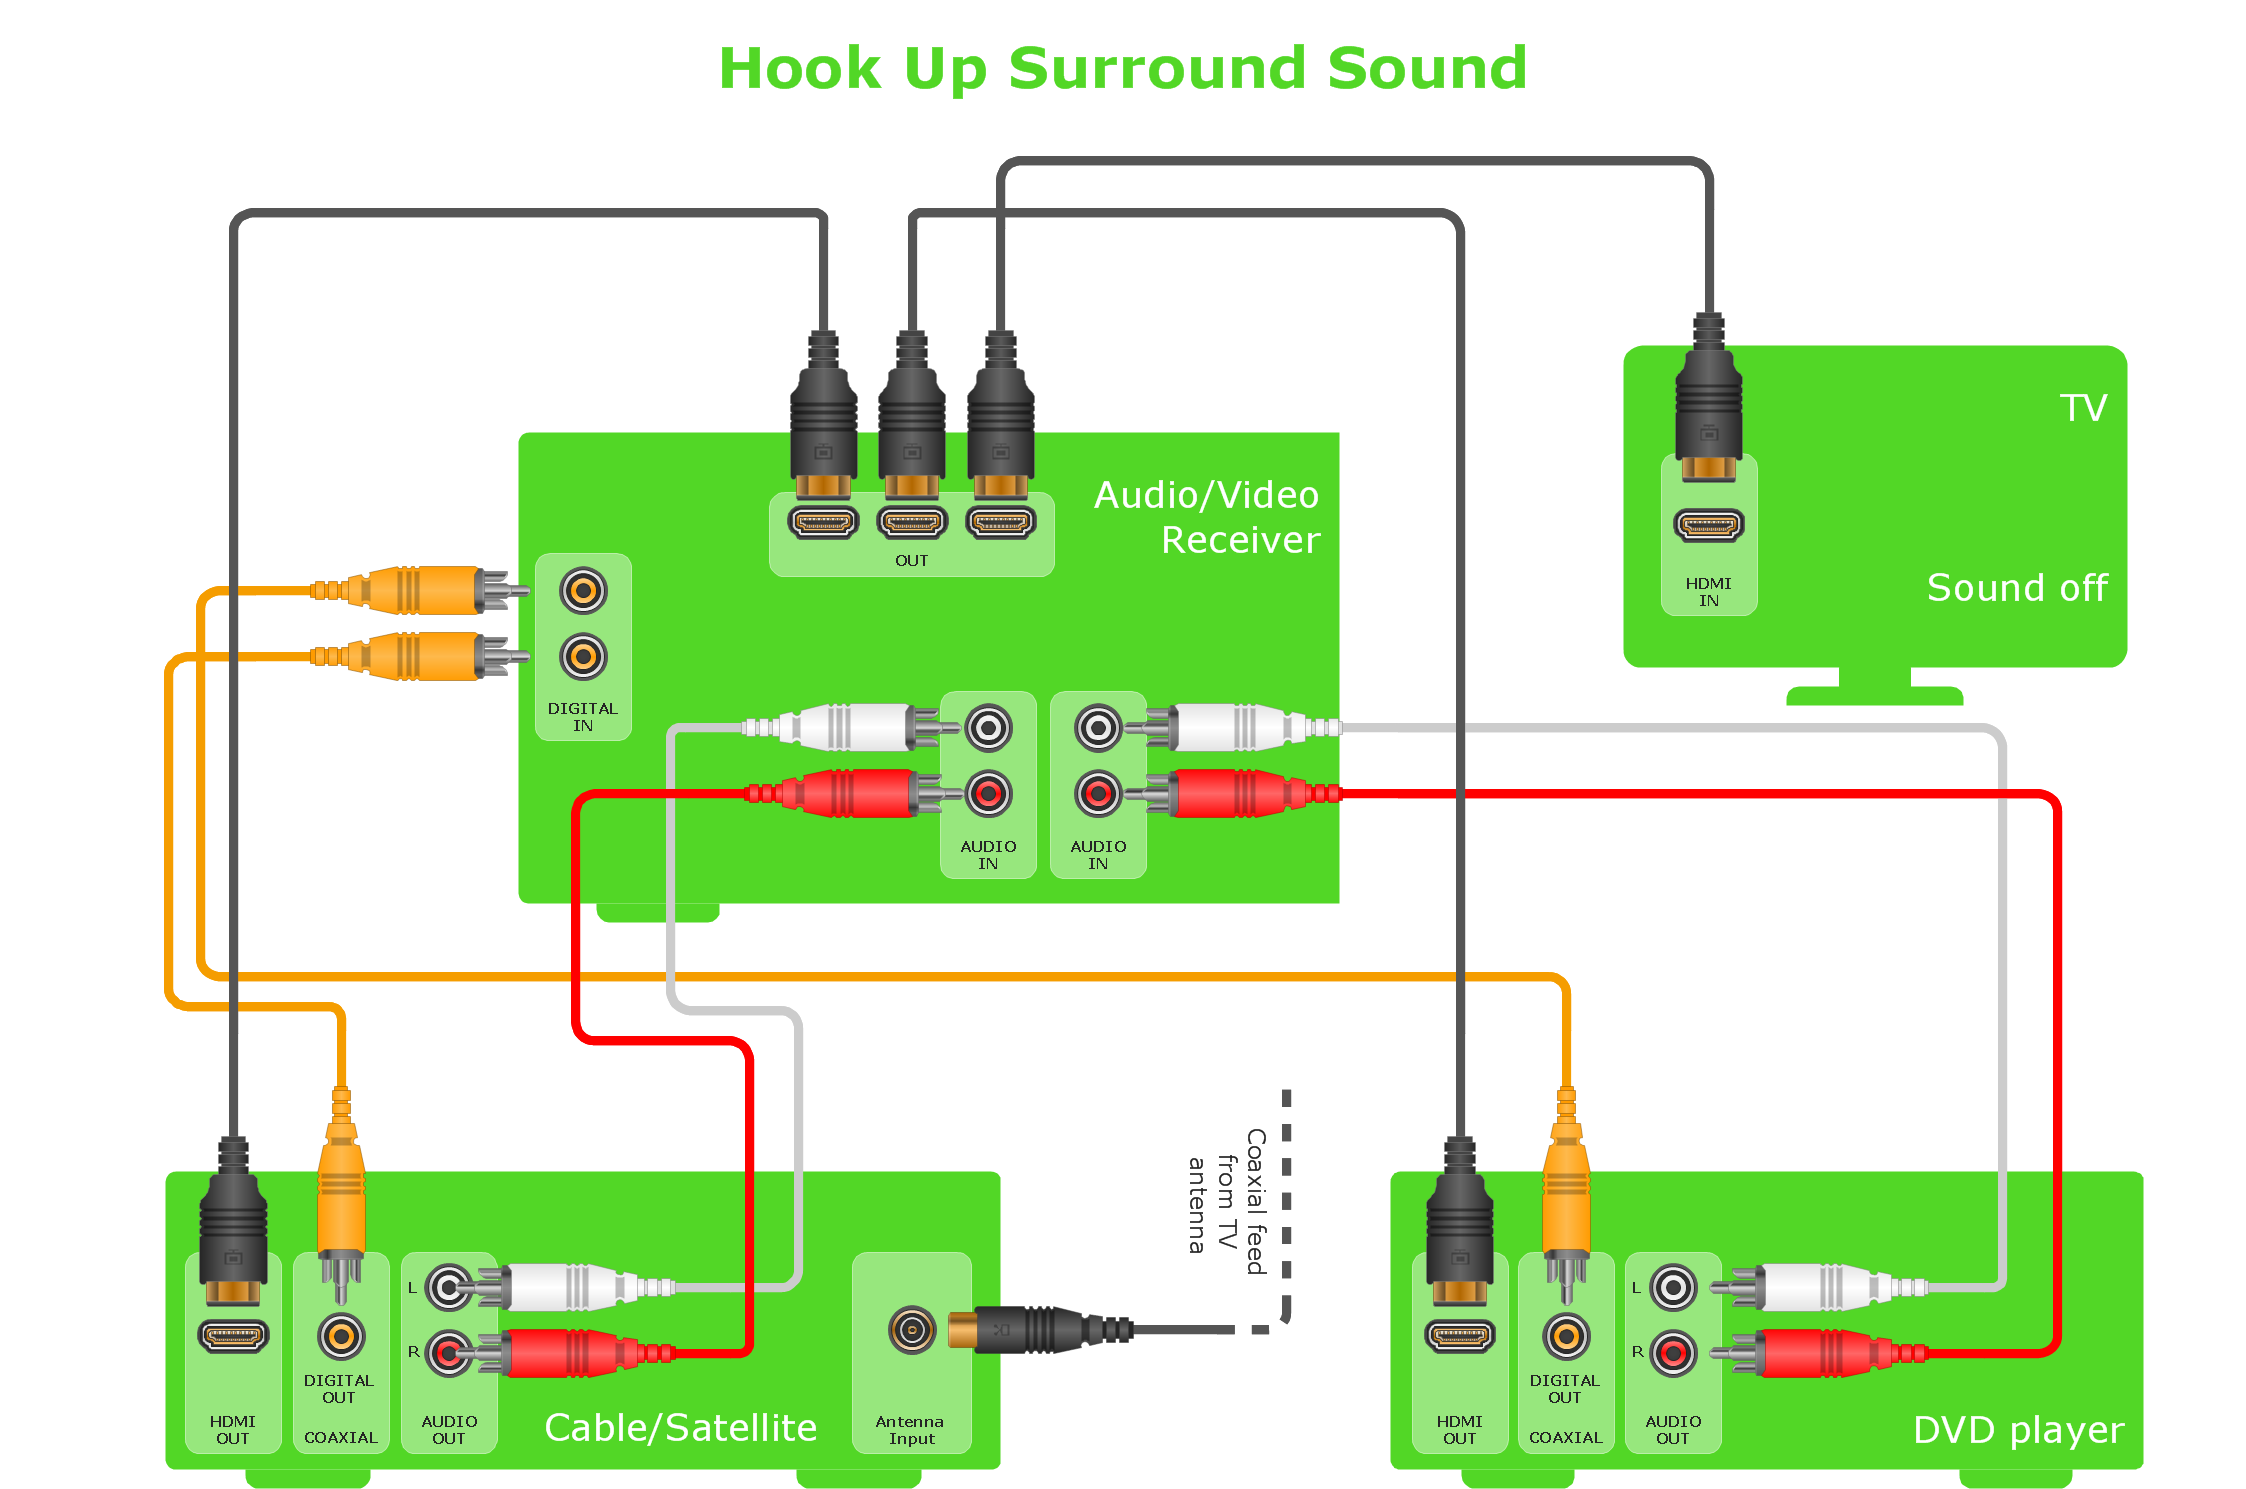 Diagram Pioneer Surround Sound Wiring Diagram Full Version Hd Quality Wiring Diagram Diagramsbunn Tomari It